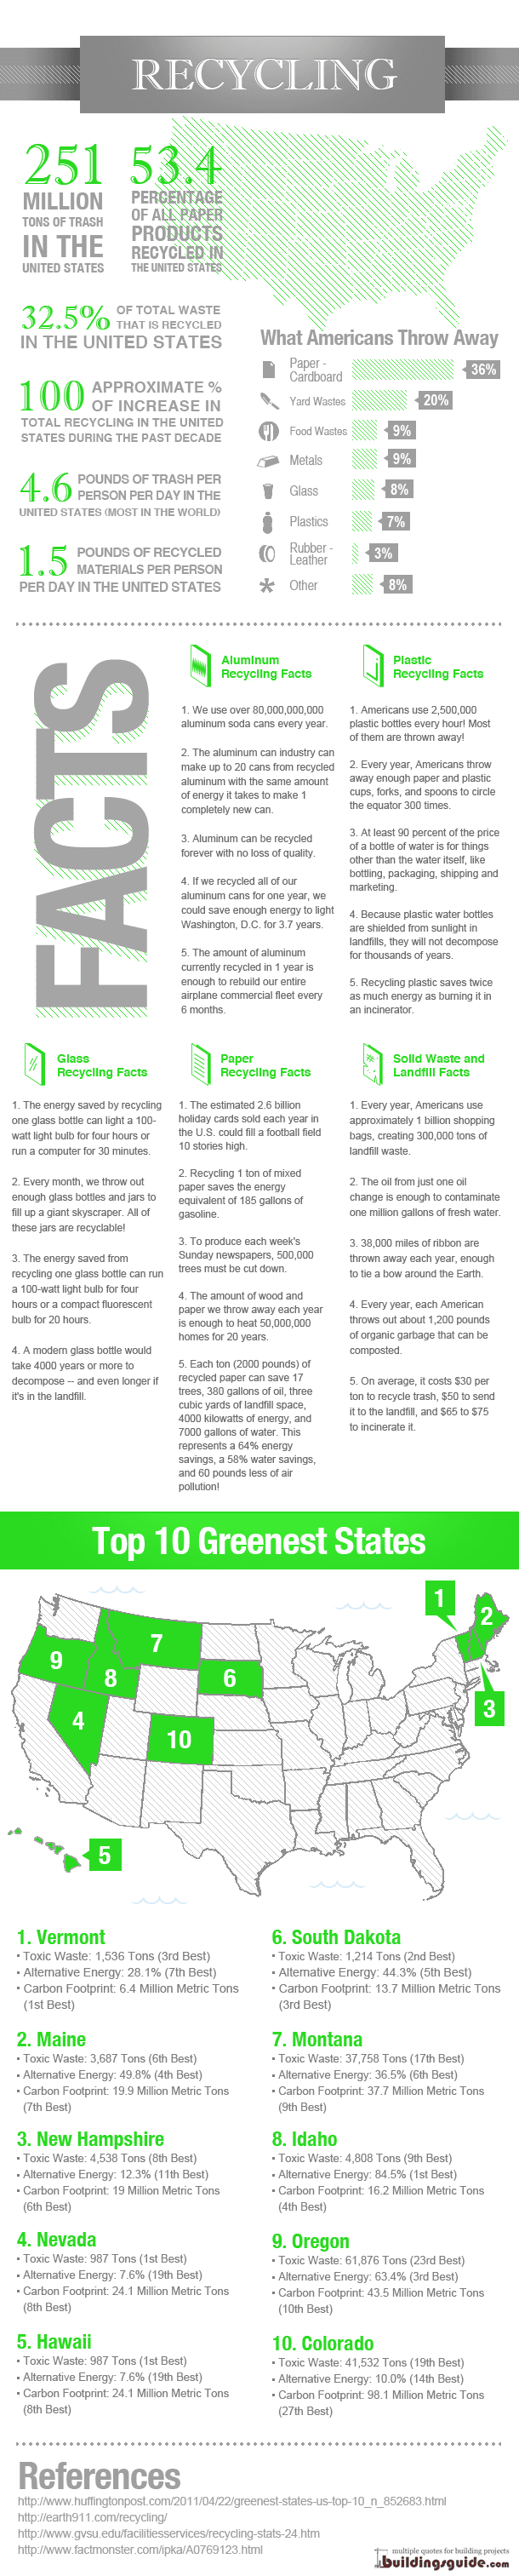 Recycling Facts & Statistics Infographic